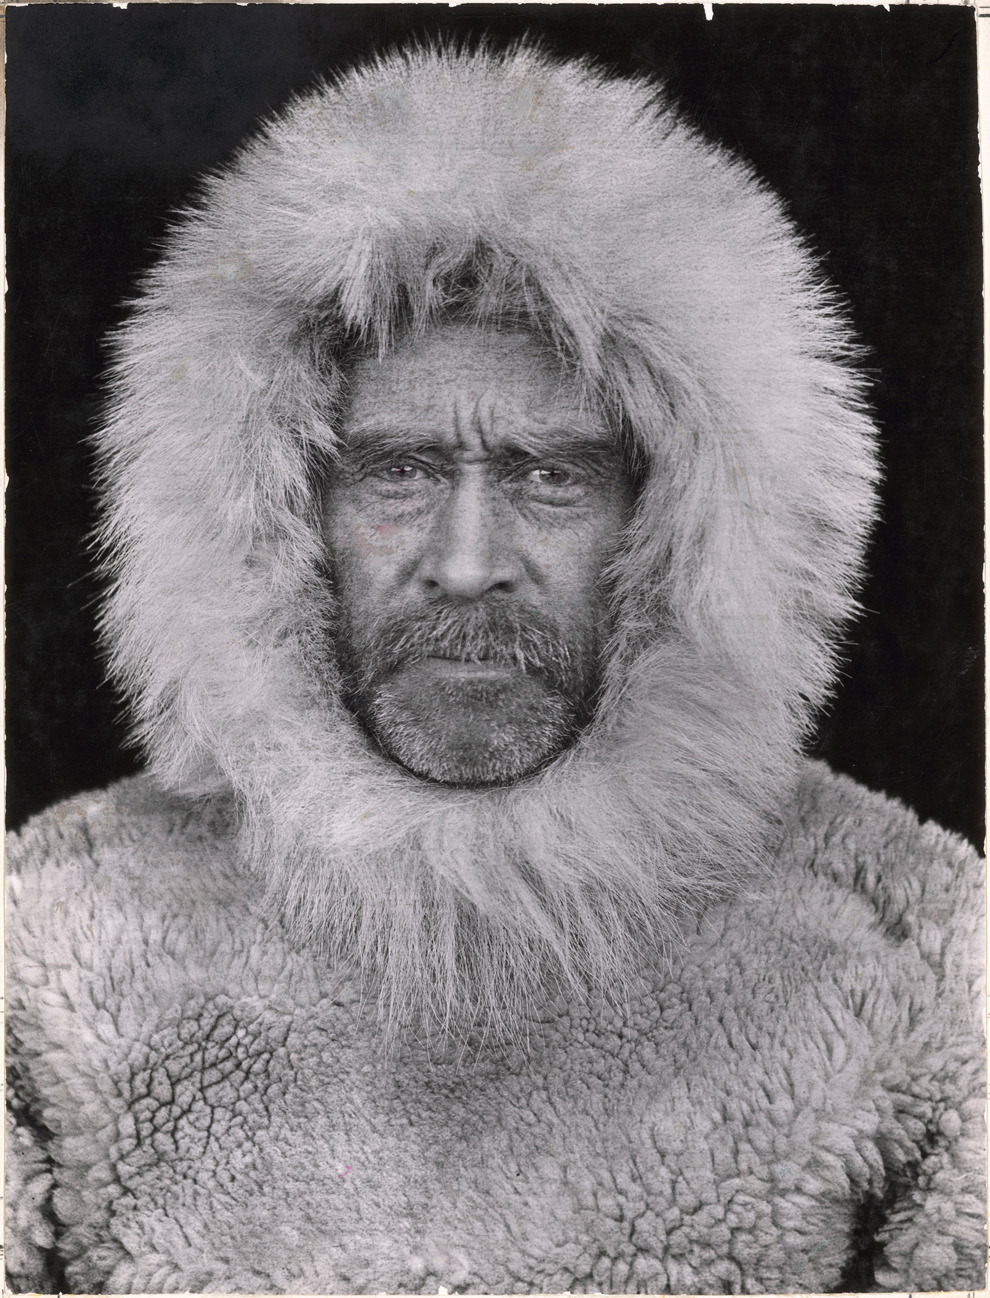 Cmdr. Robert E. Peary's 1909 expedition to the North Pole